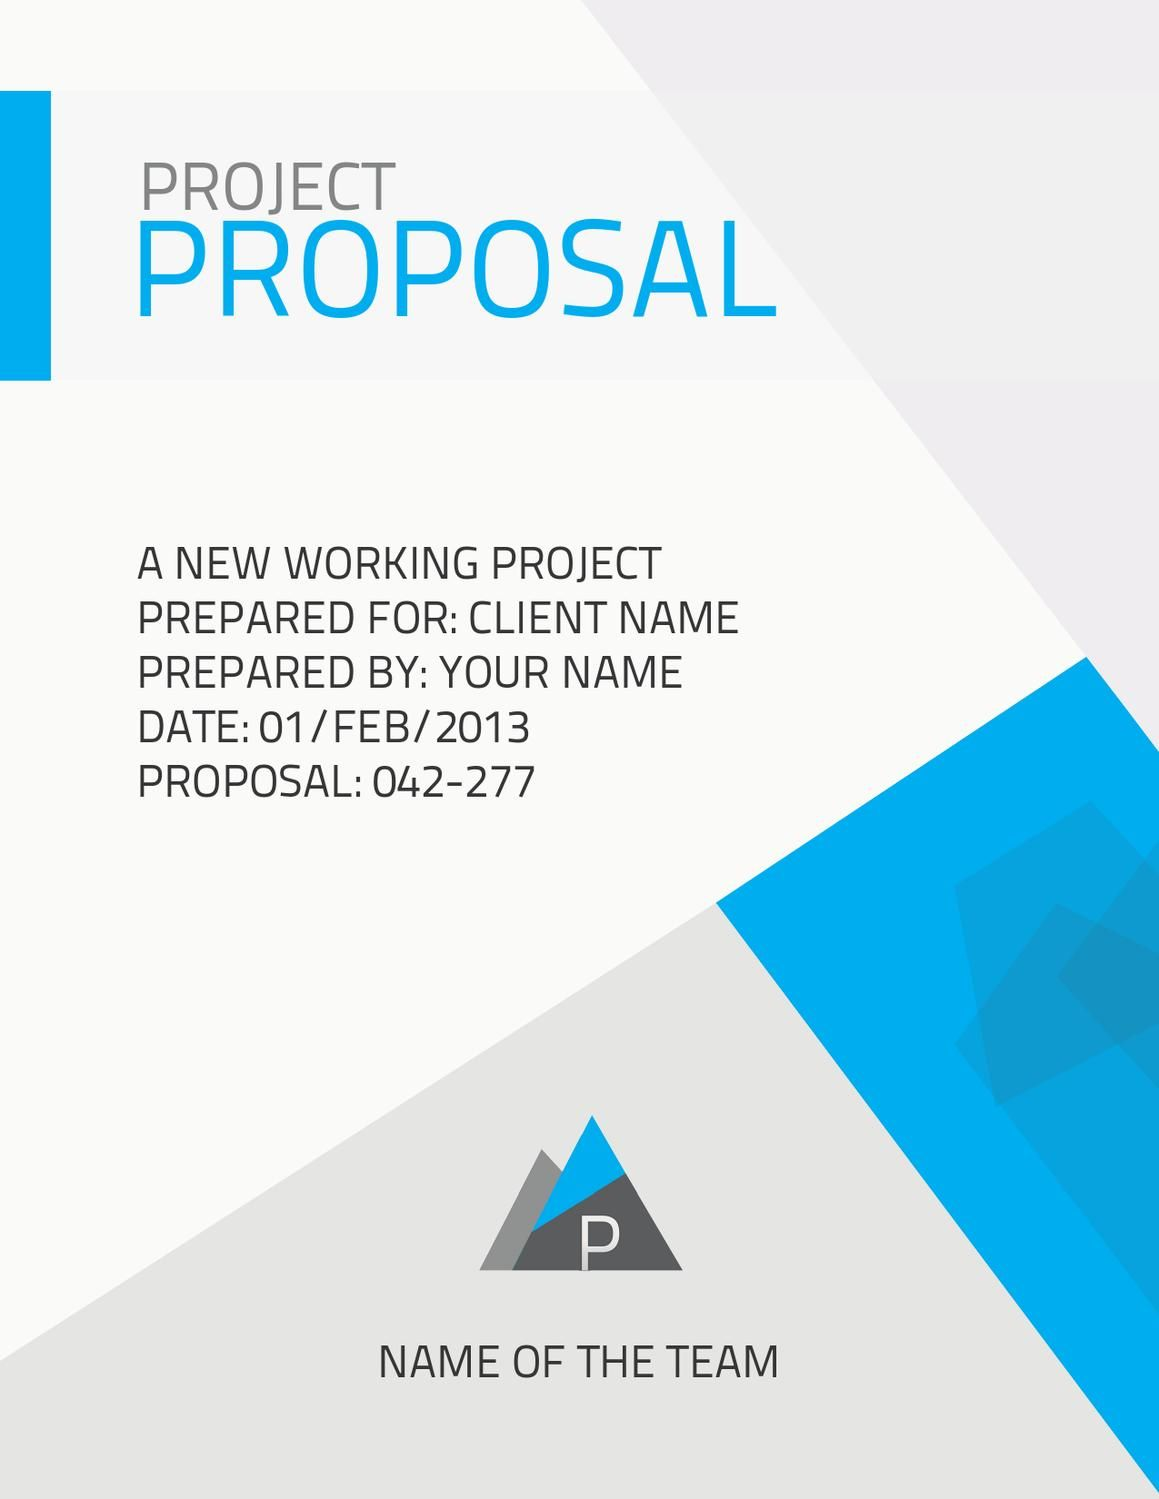 Corporate Proposal + Contract + Invoice | Proposal templates ...